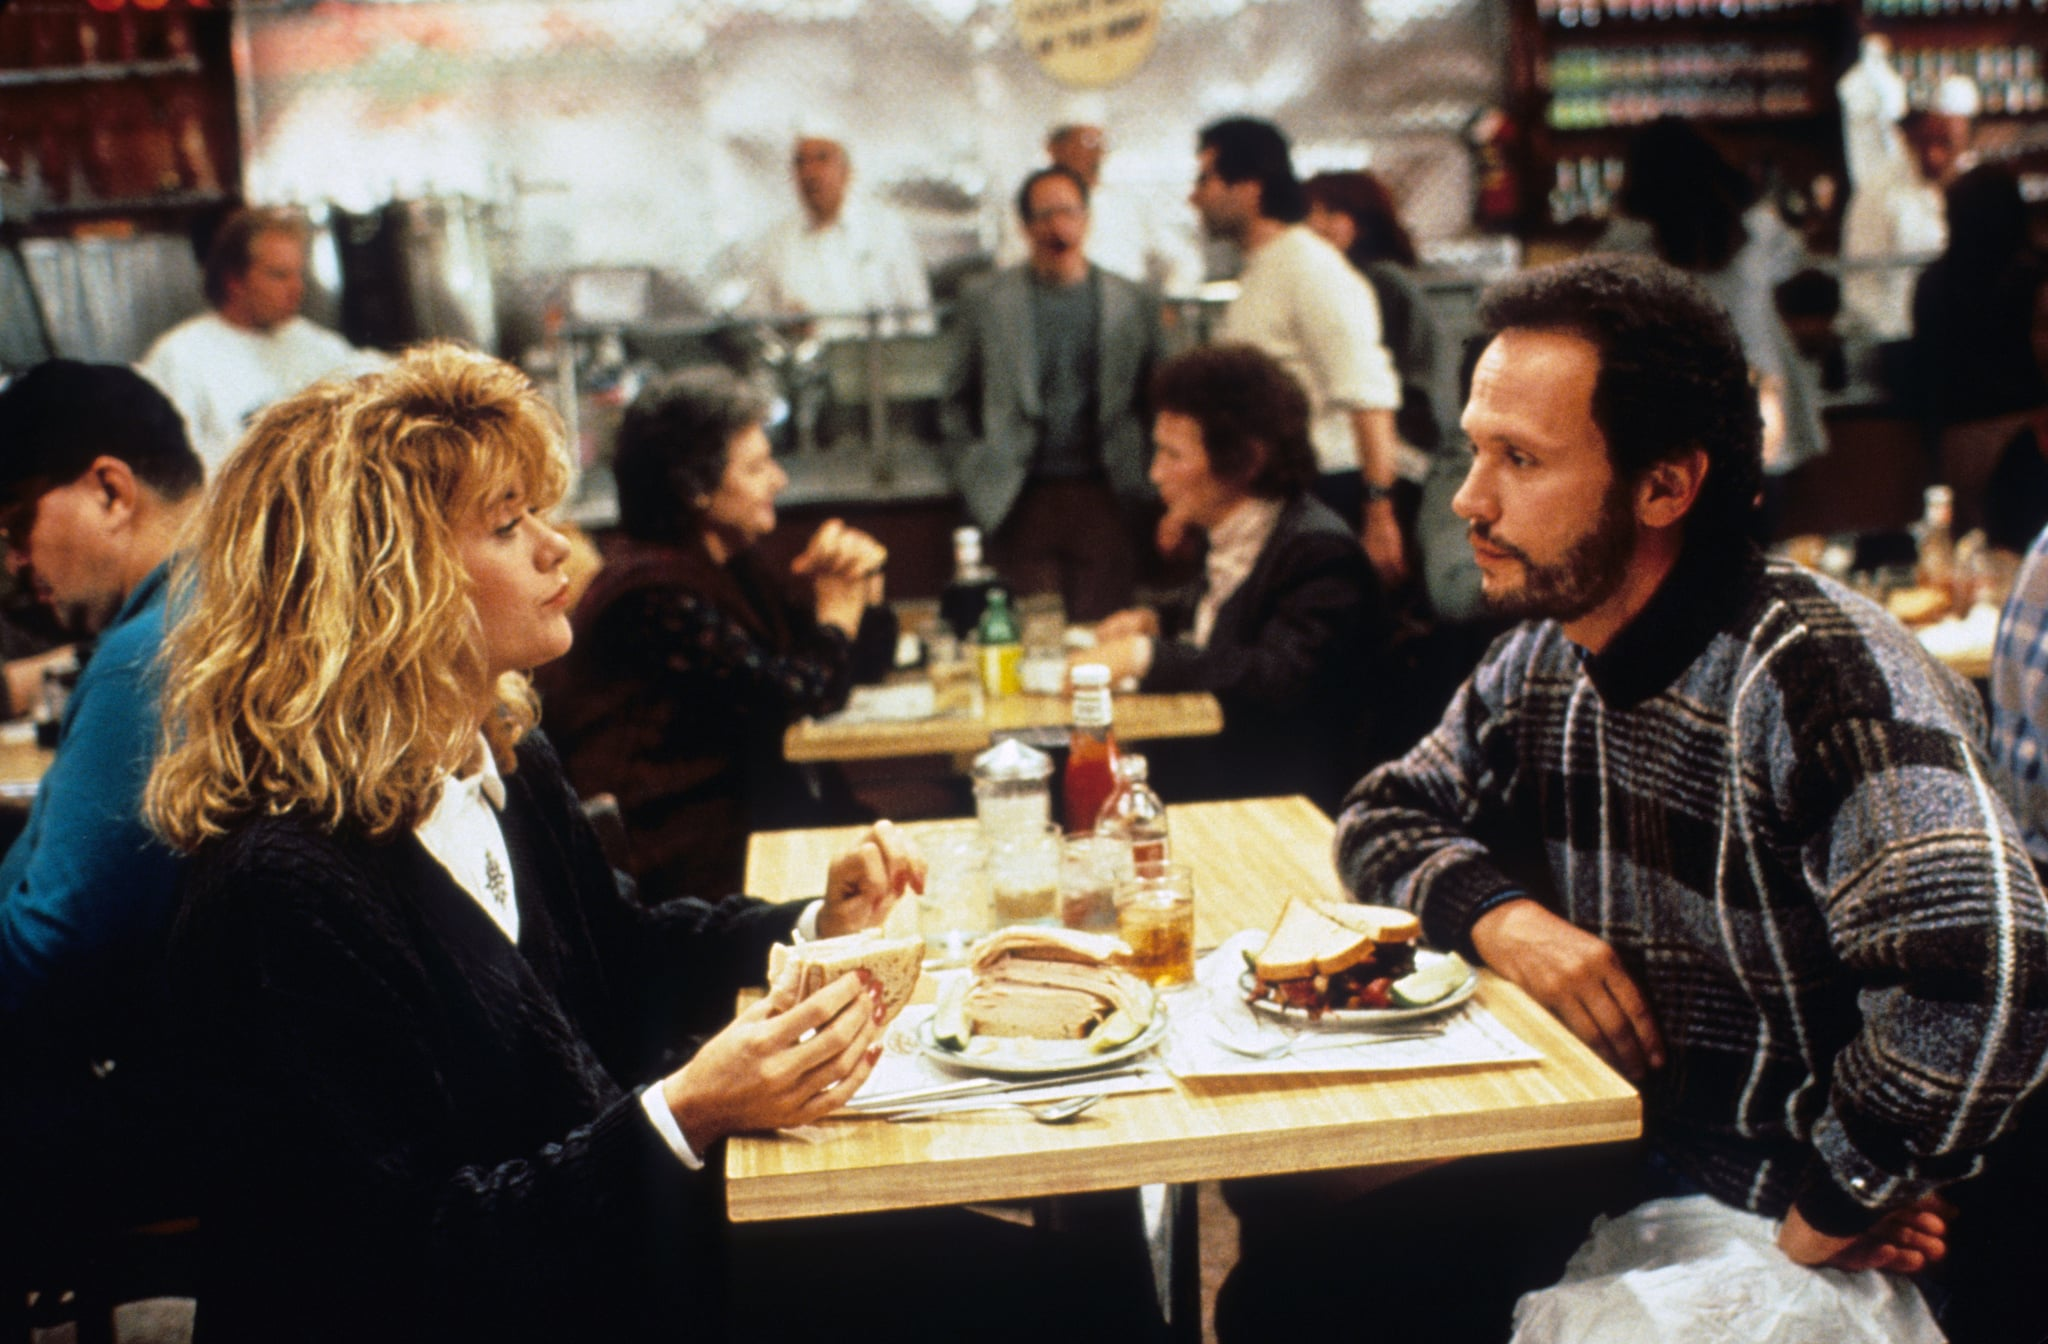 WHEN HARRY MET SALLY..., Meg Ryan, Billy Crystal, 1989, (c) Columbia/courtesy Everett Collection